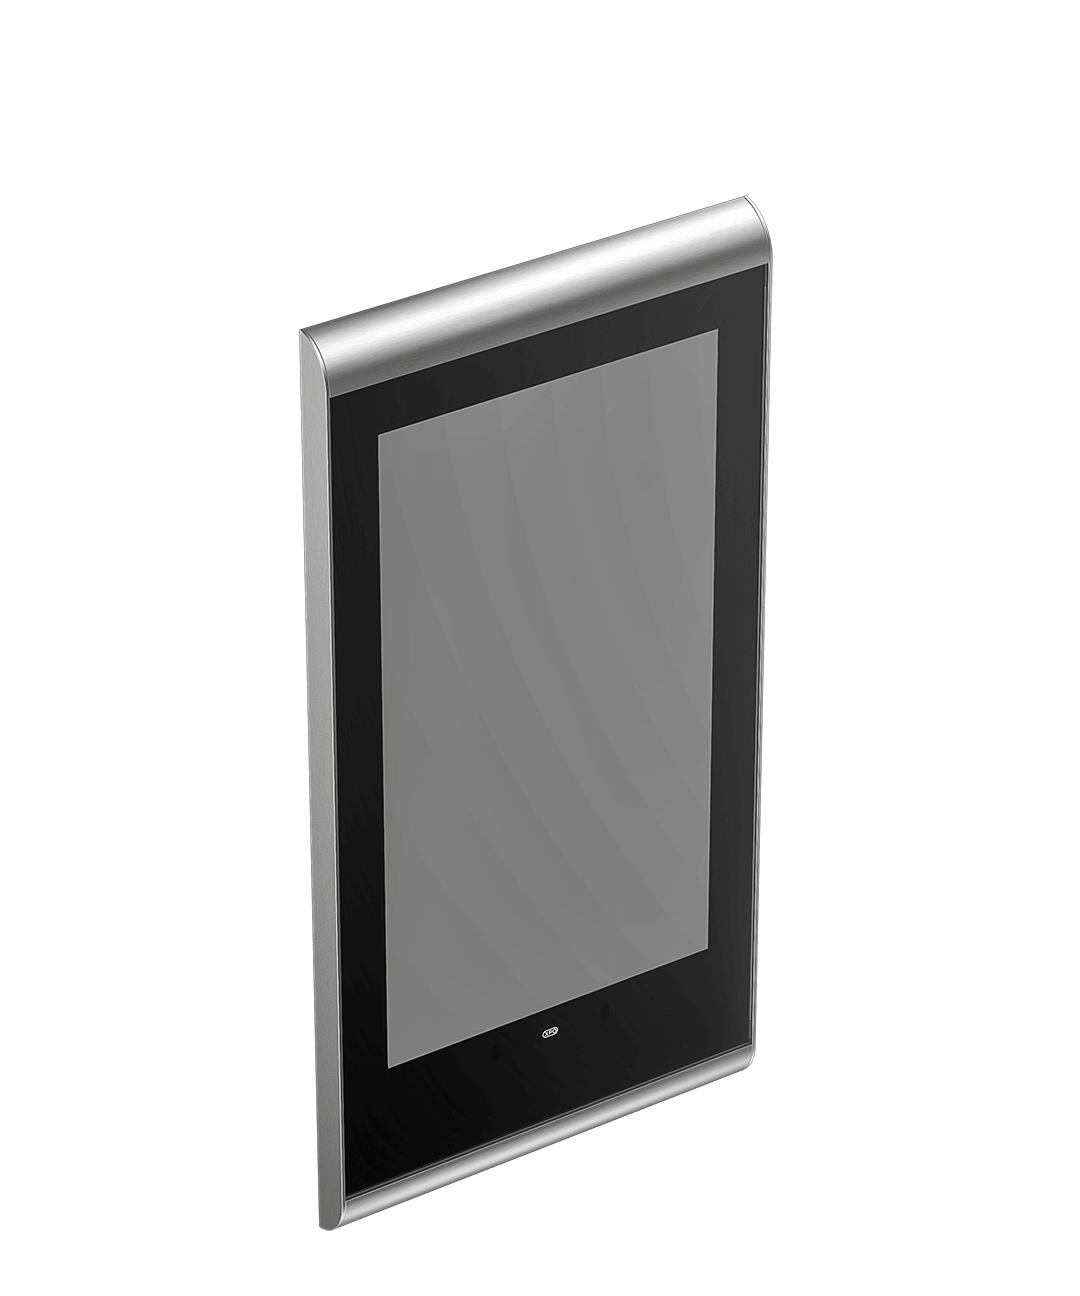 XPO Screens Invite 24PT Small - Gray Brushed Alu Material